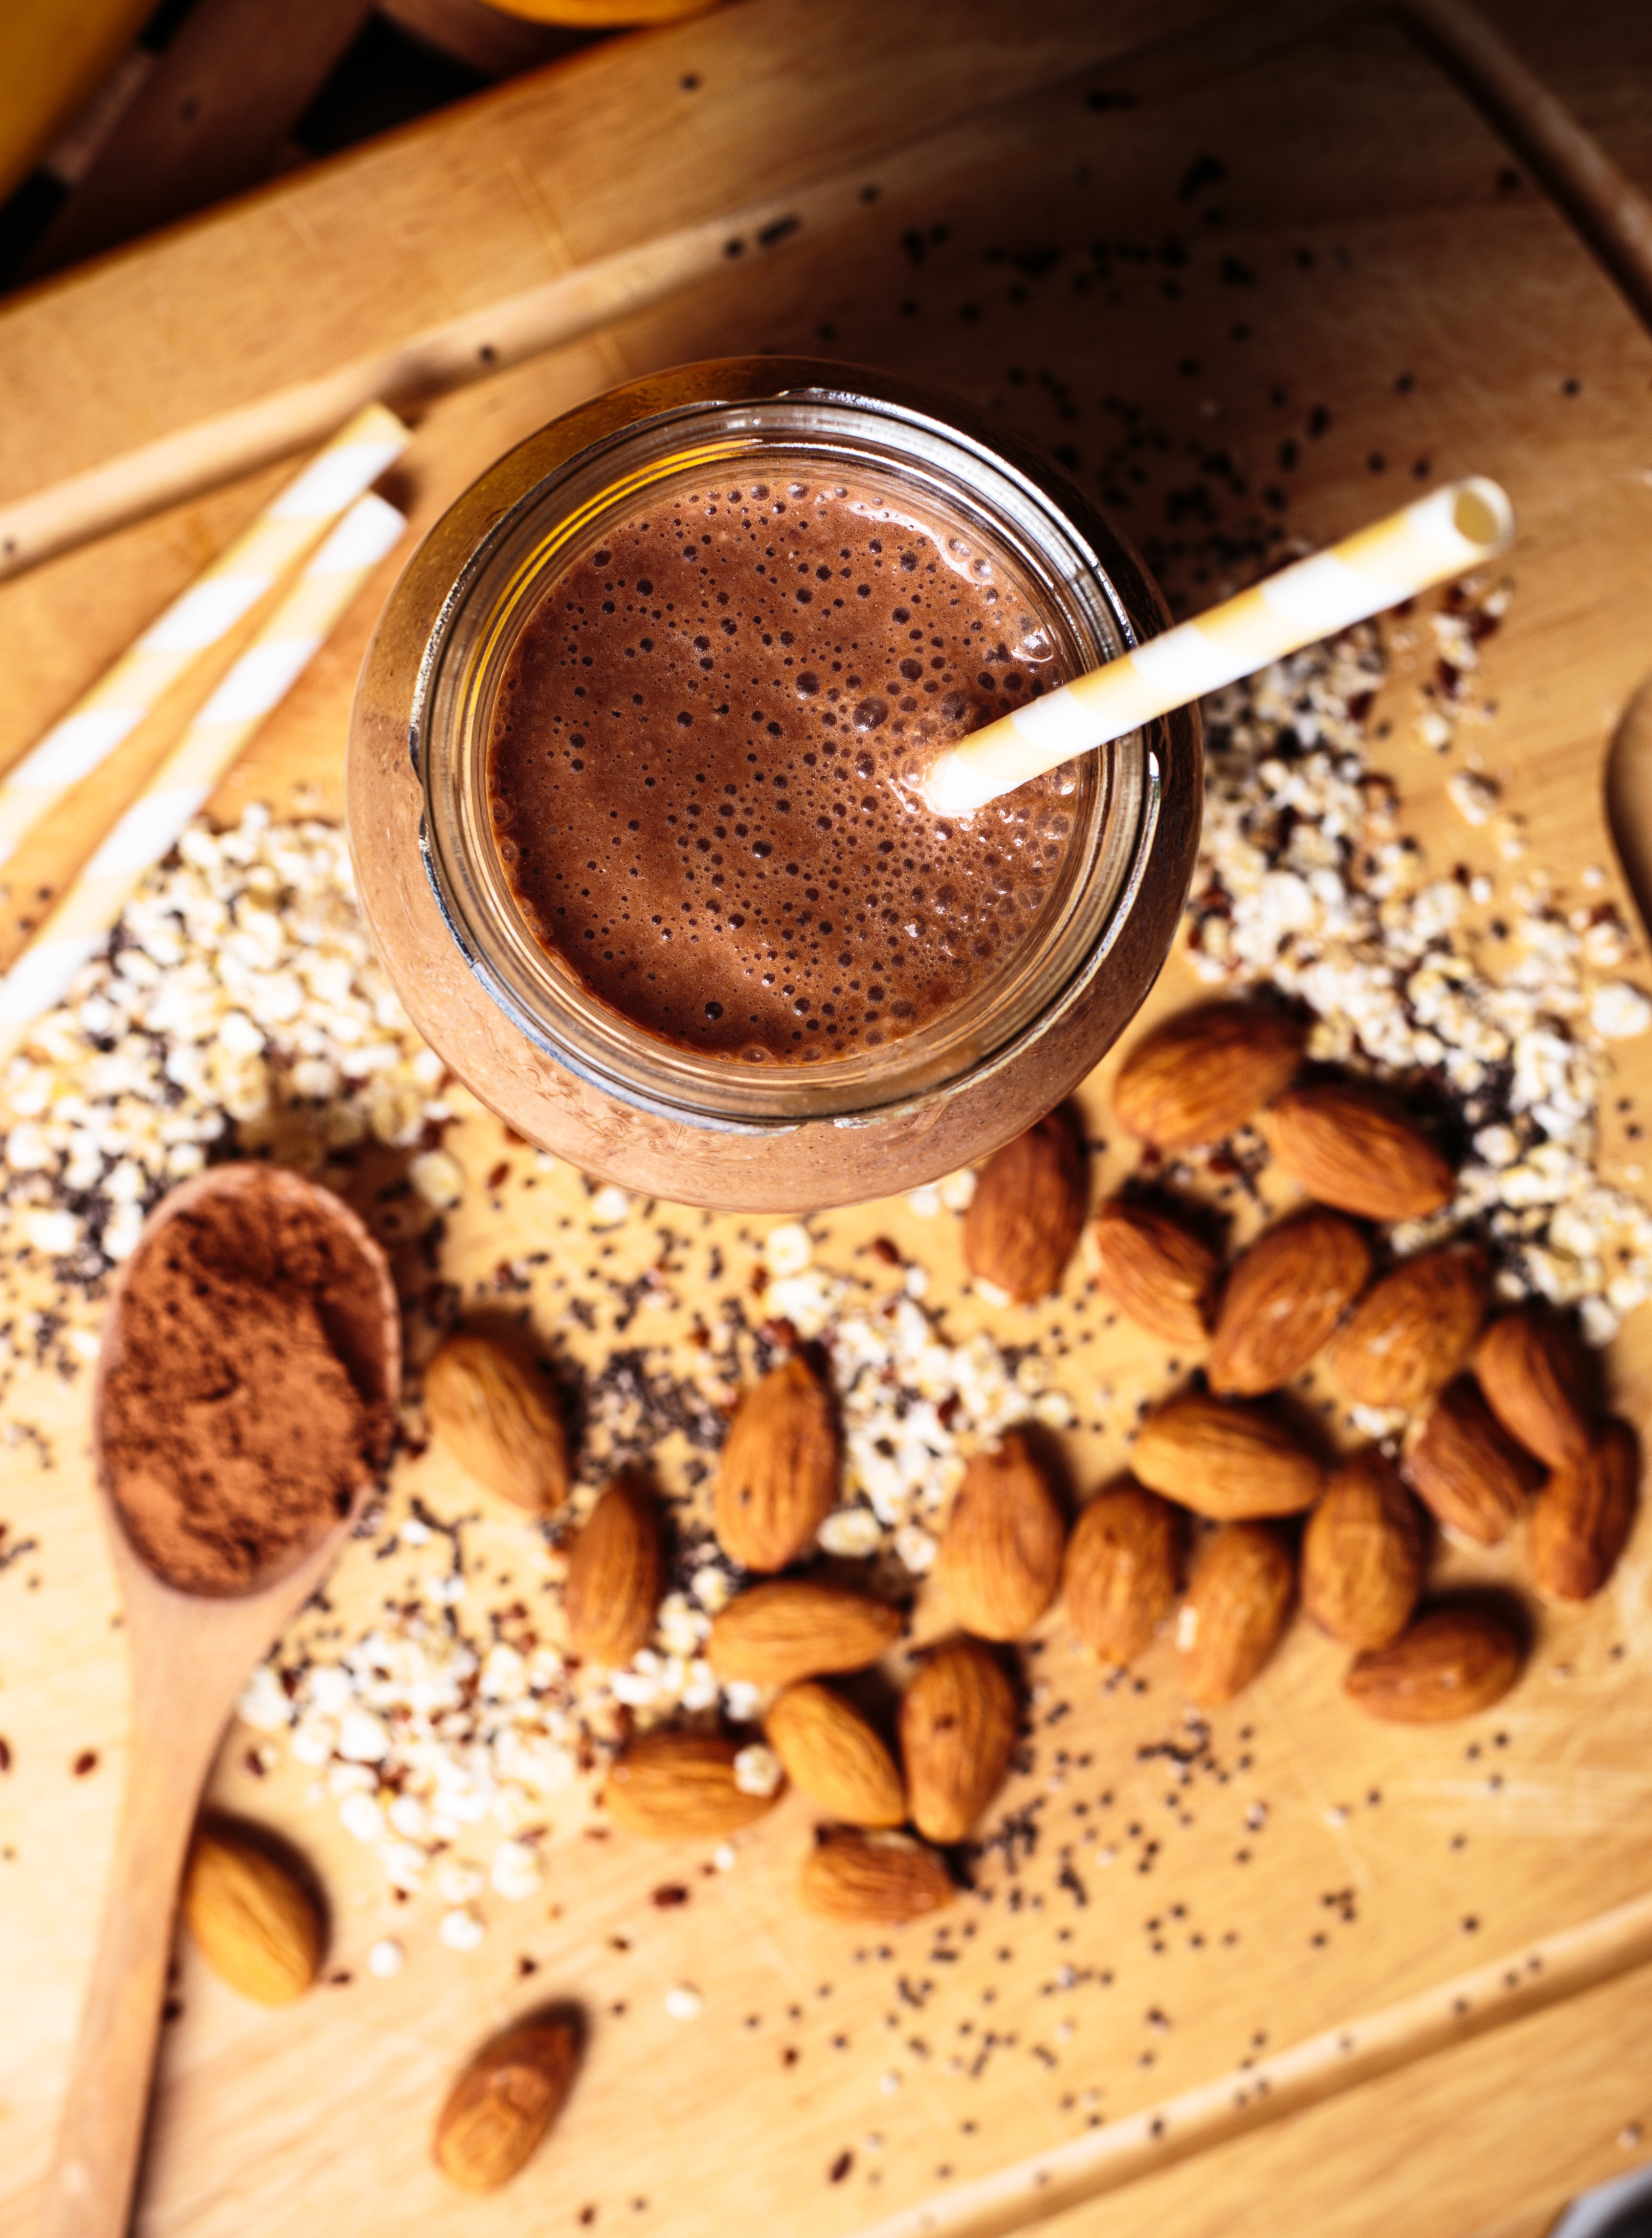 Chocolate smoothie made from cocoa, oats, almonds, almond milk, chia seeds